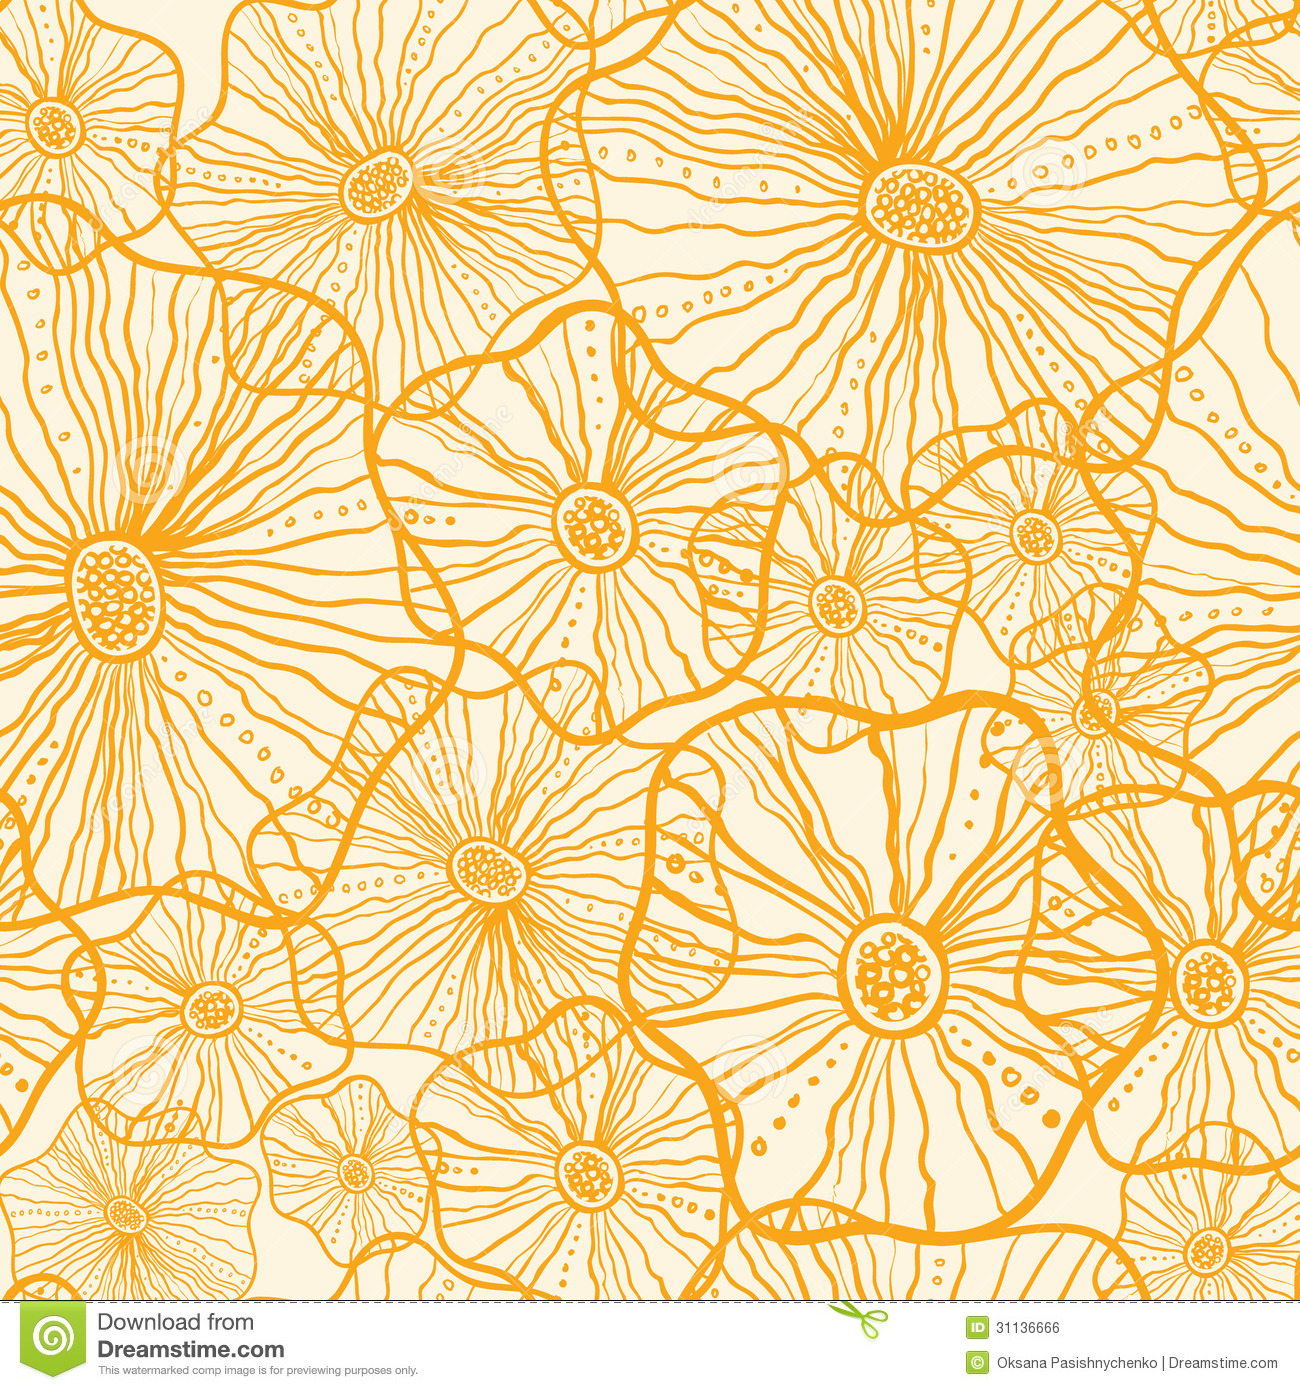 yellow floral pattern - photo #43